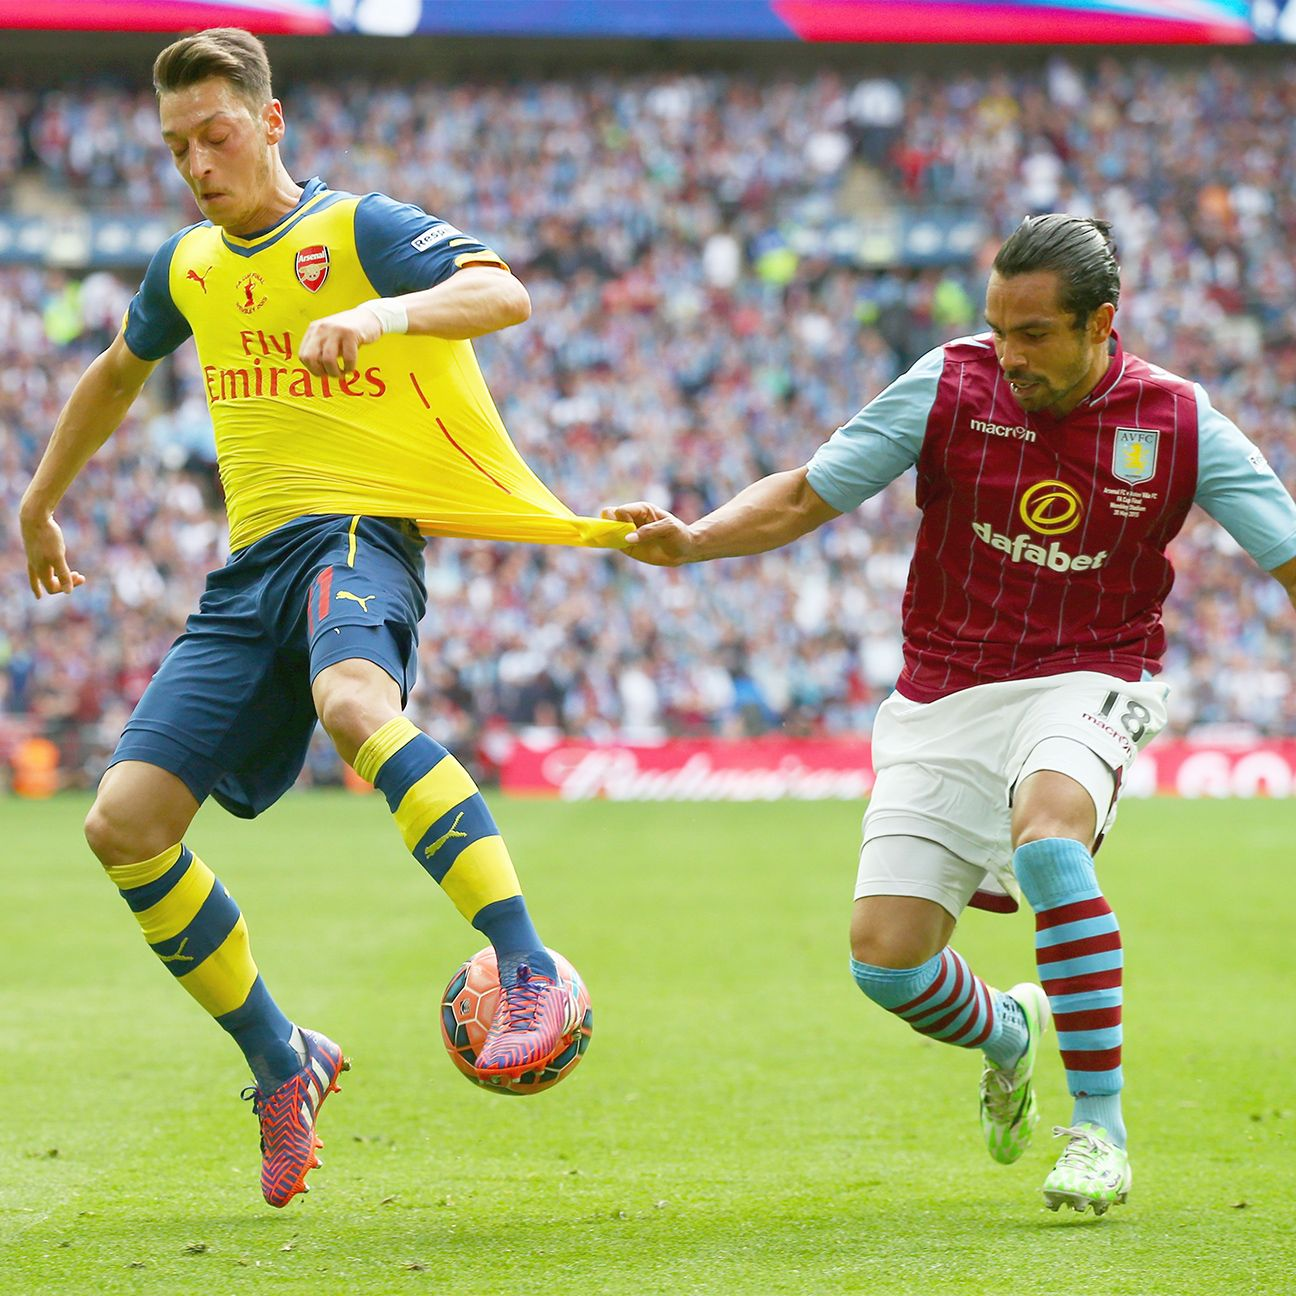 Aston Villa were unable to clamp down on Arsenal's Mesut Ozil in Saturday's FA Cup final.